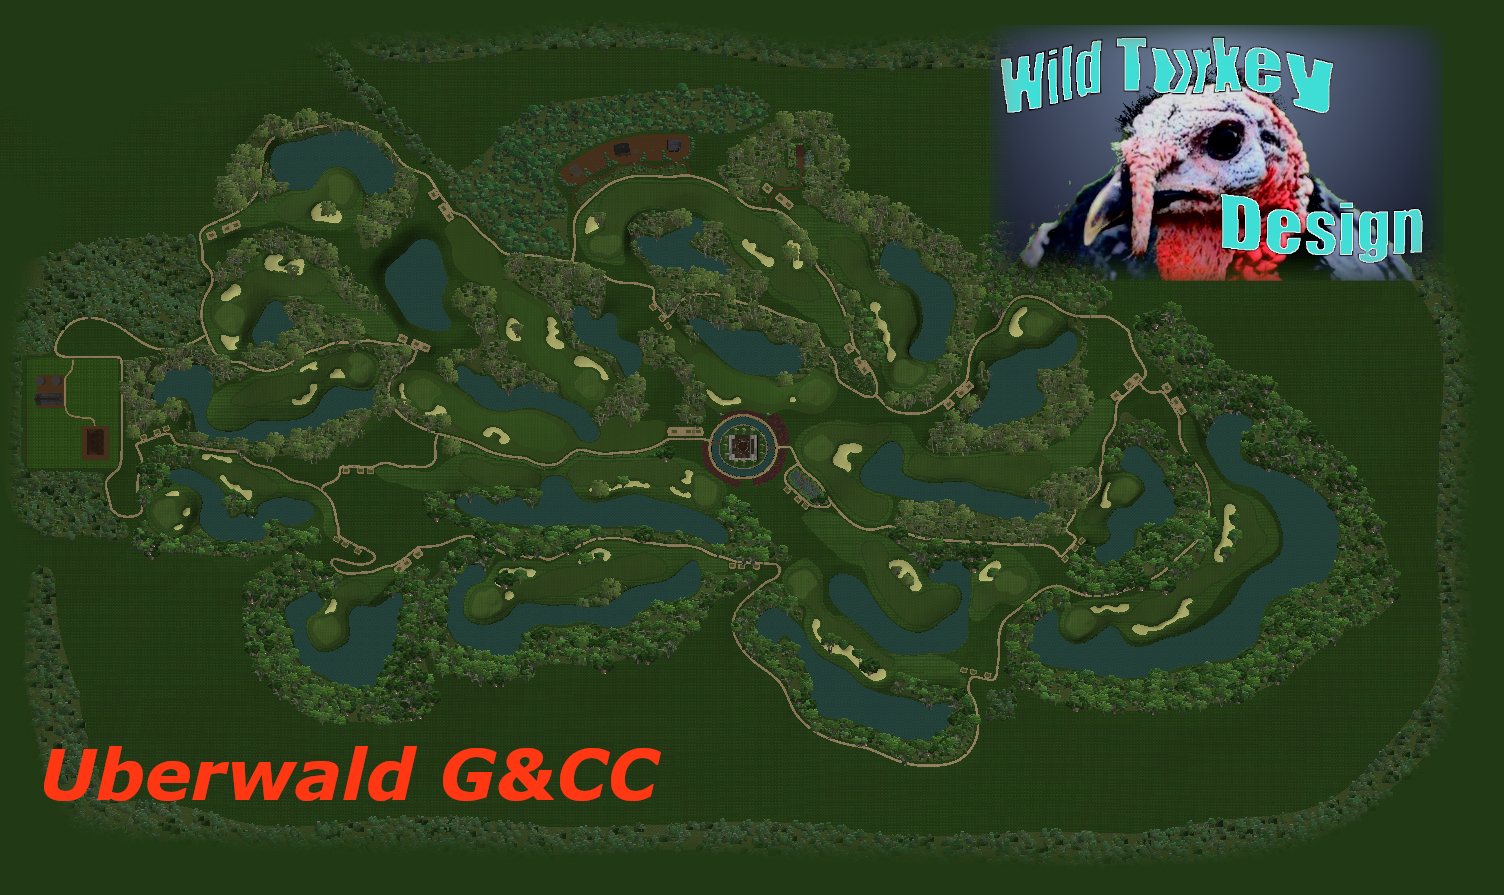 Picture of Uberwald G&CC - click to view original size